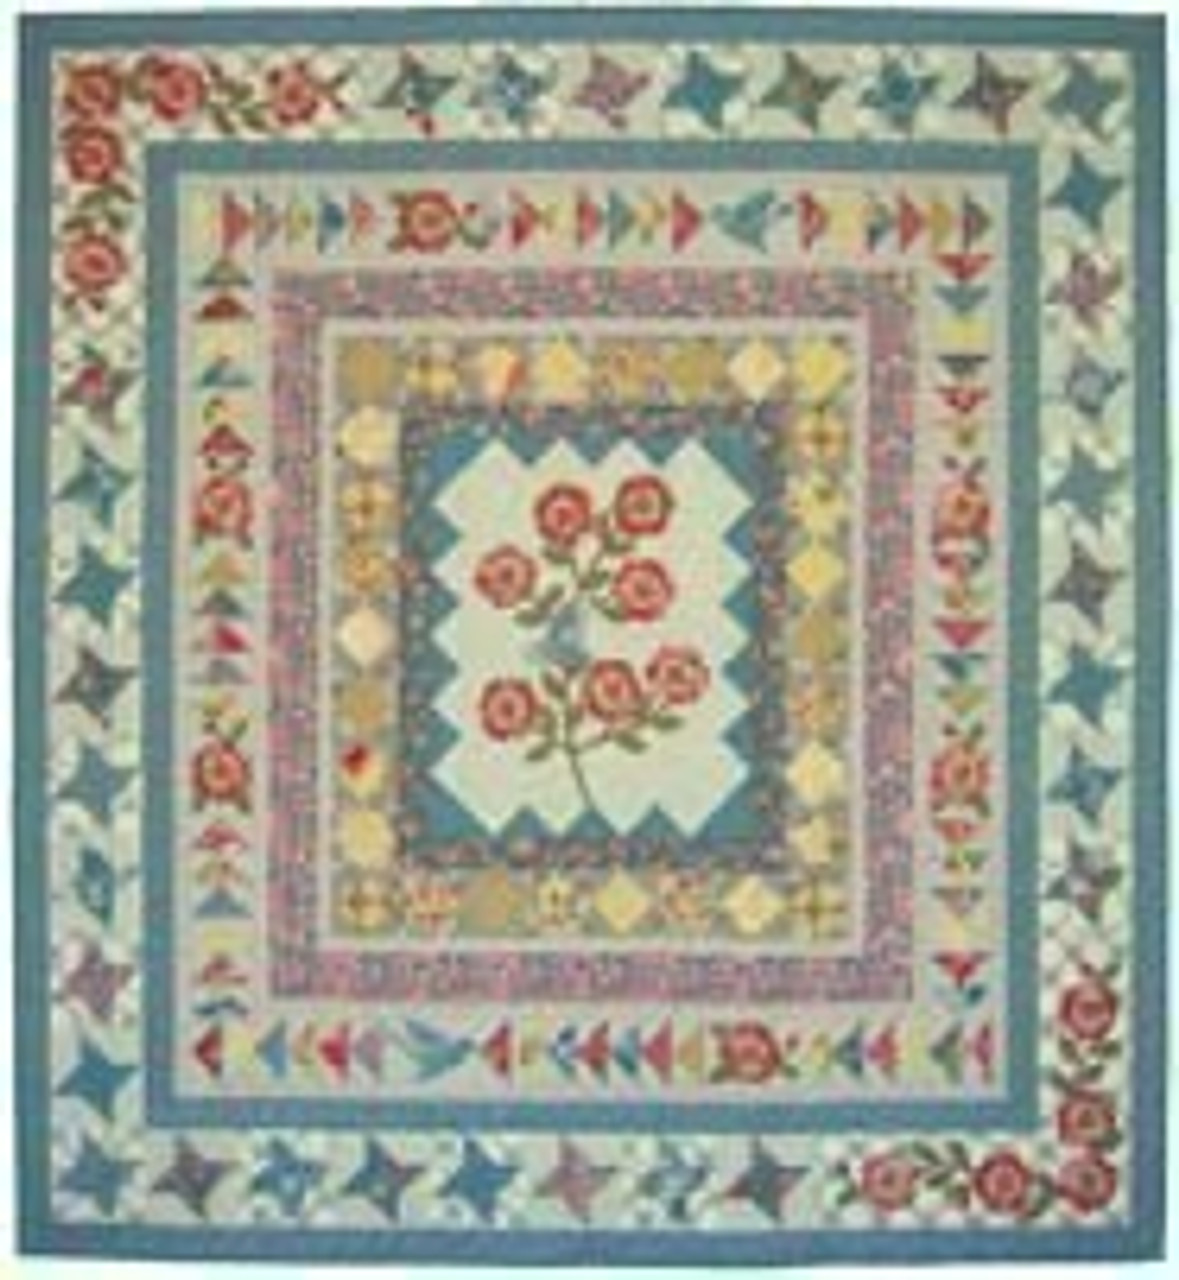 Faded Roses - a border by border pattern by Leslee Price